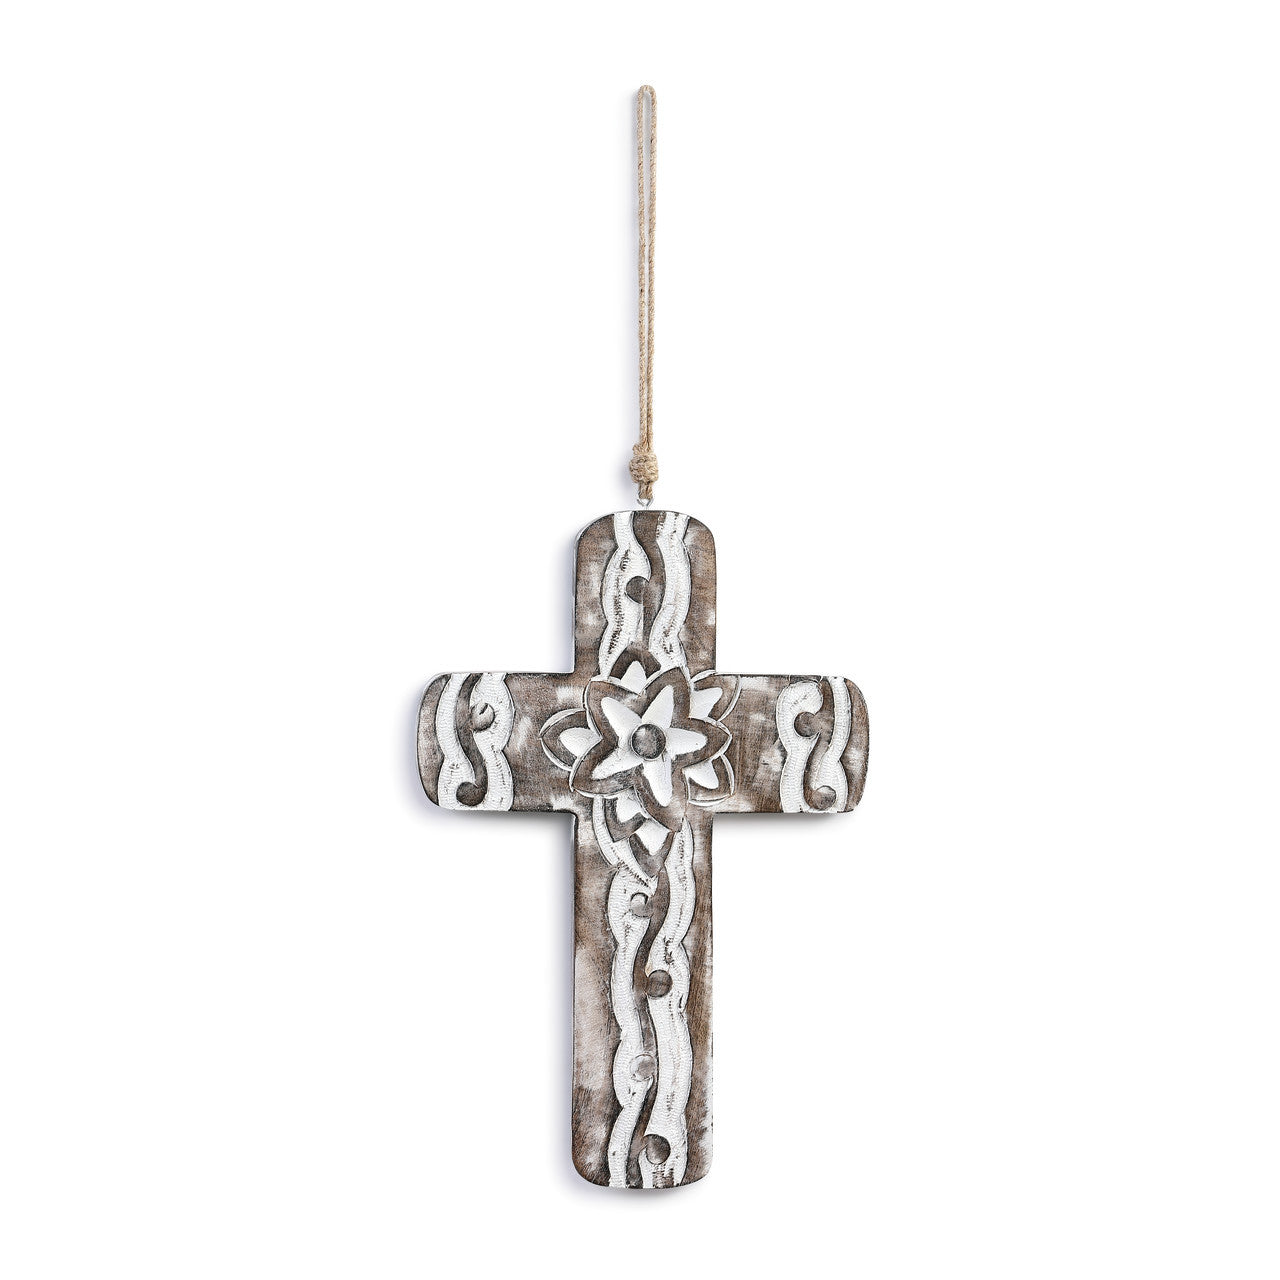 Hanging Wood Cross